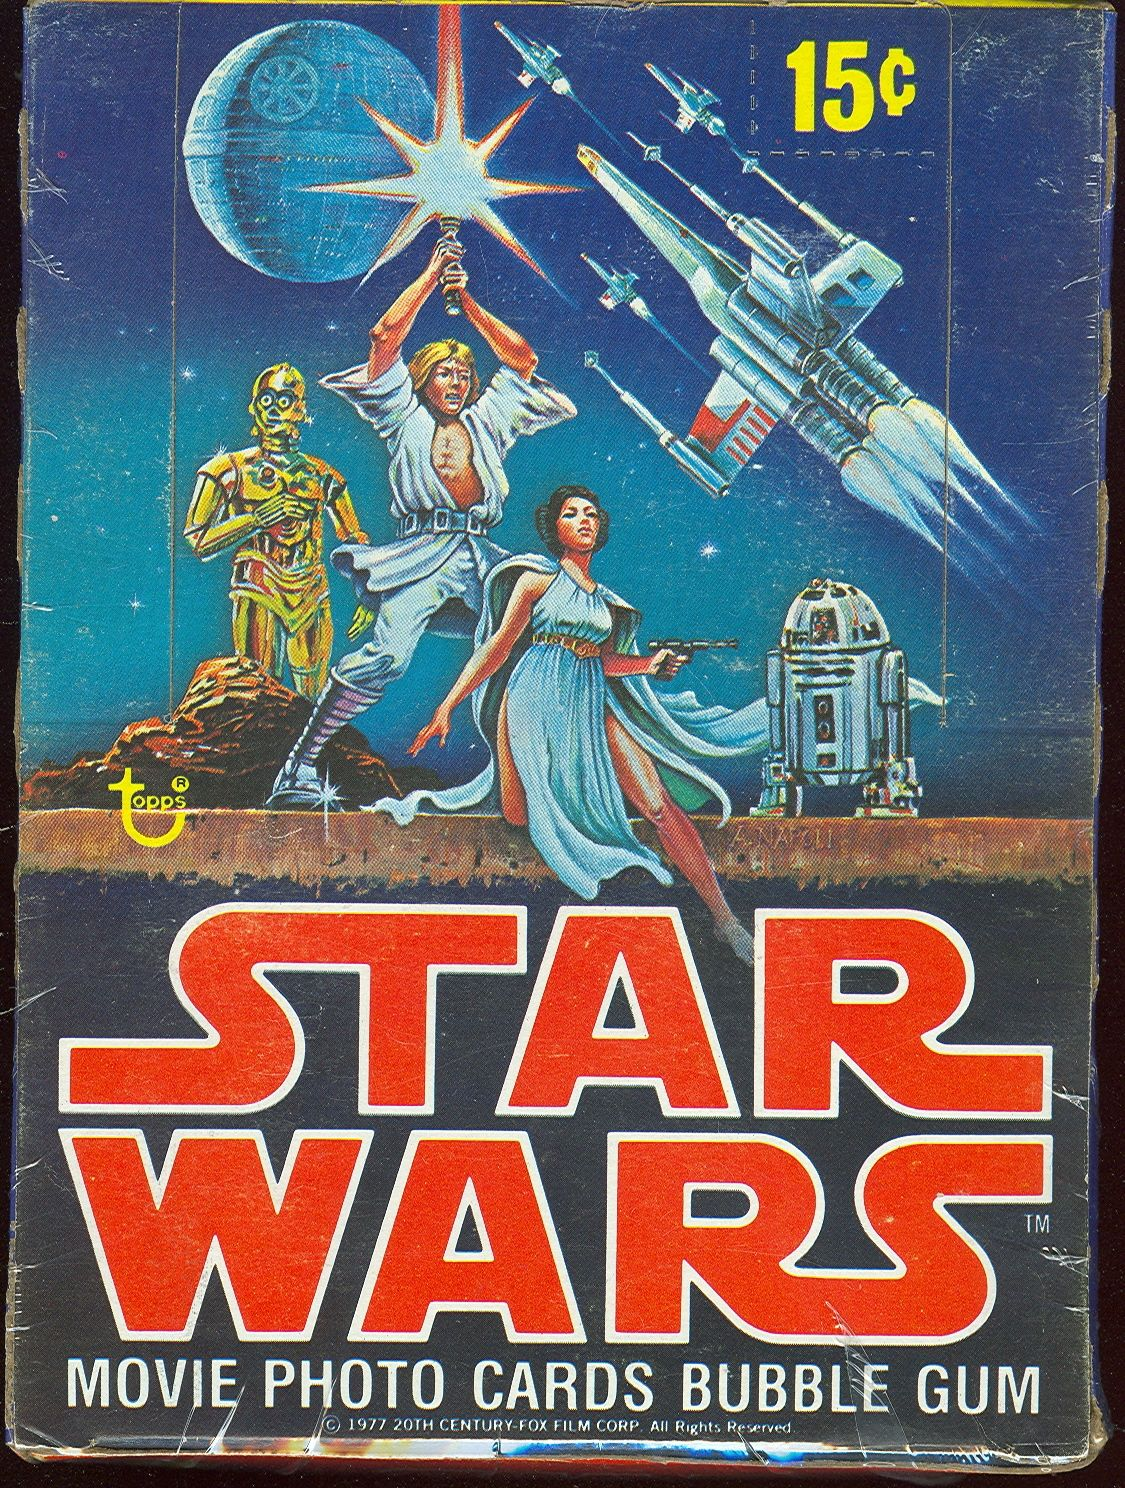 Vintage Topps Star Wars Movie Photo Cards with Bubble Gum -- trading cards box design, 1977